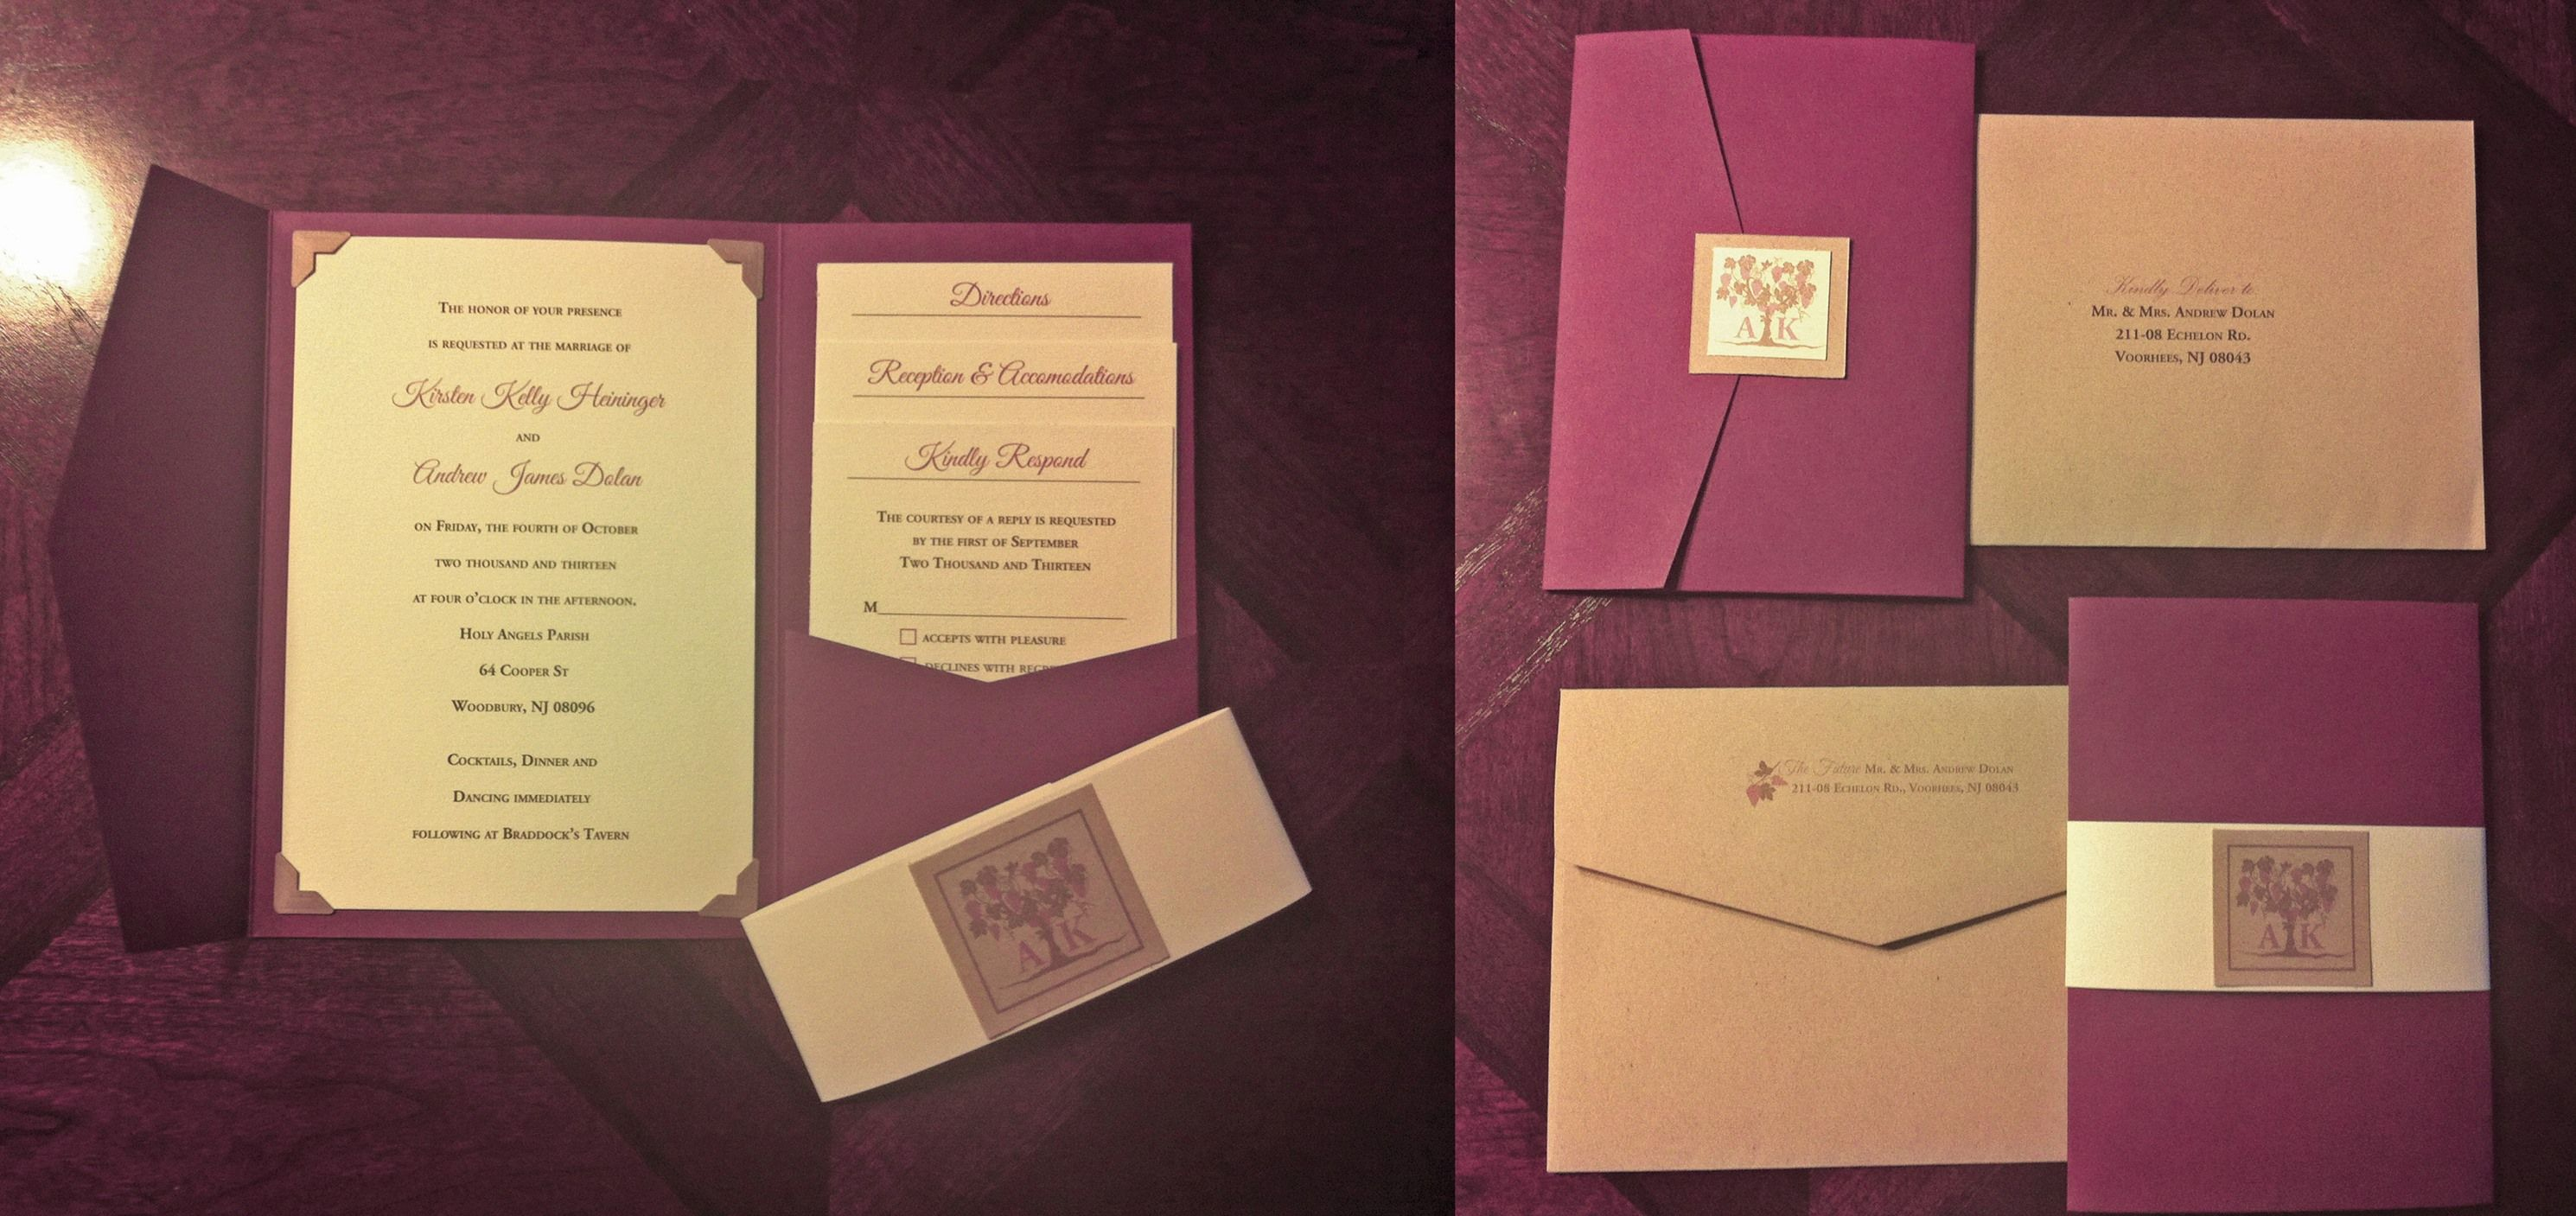 Diy wedding invites designed the cards in illustrator and used